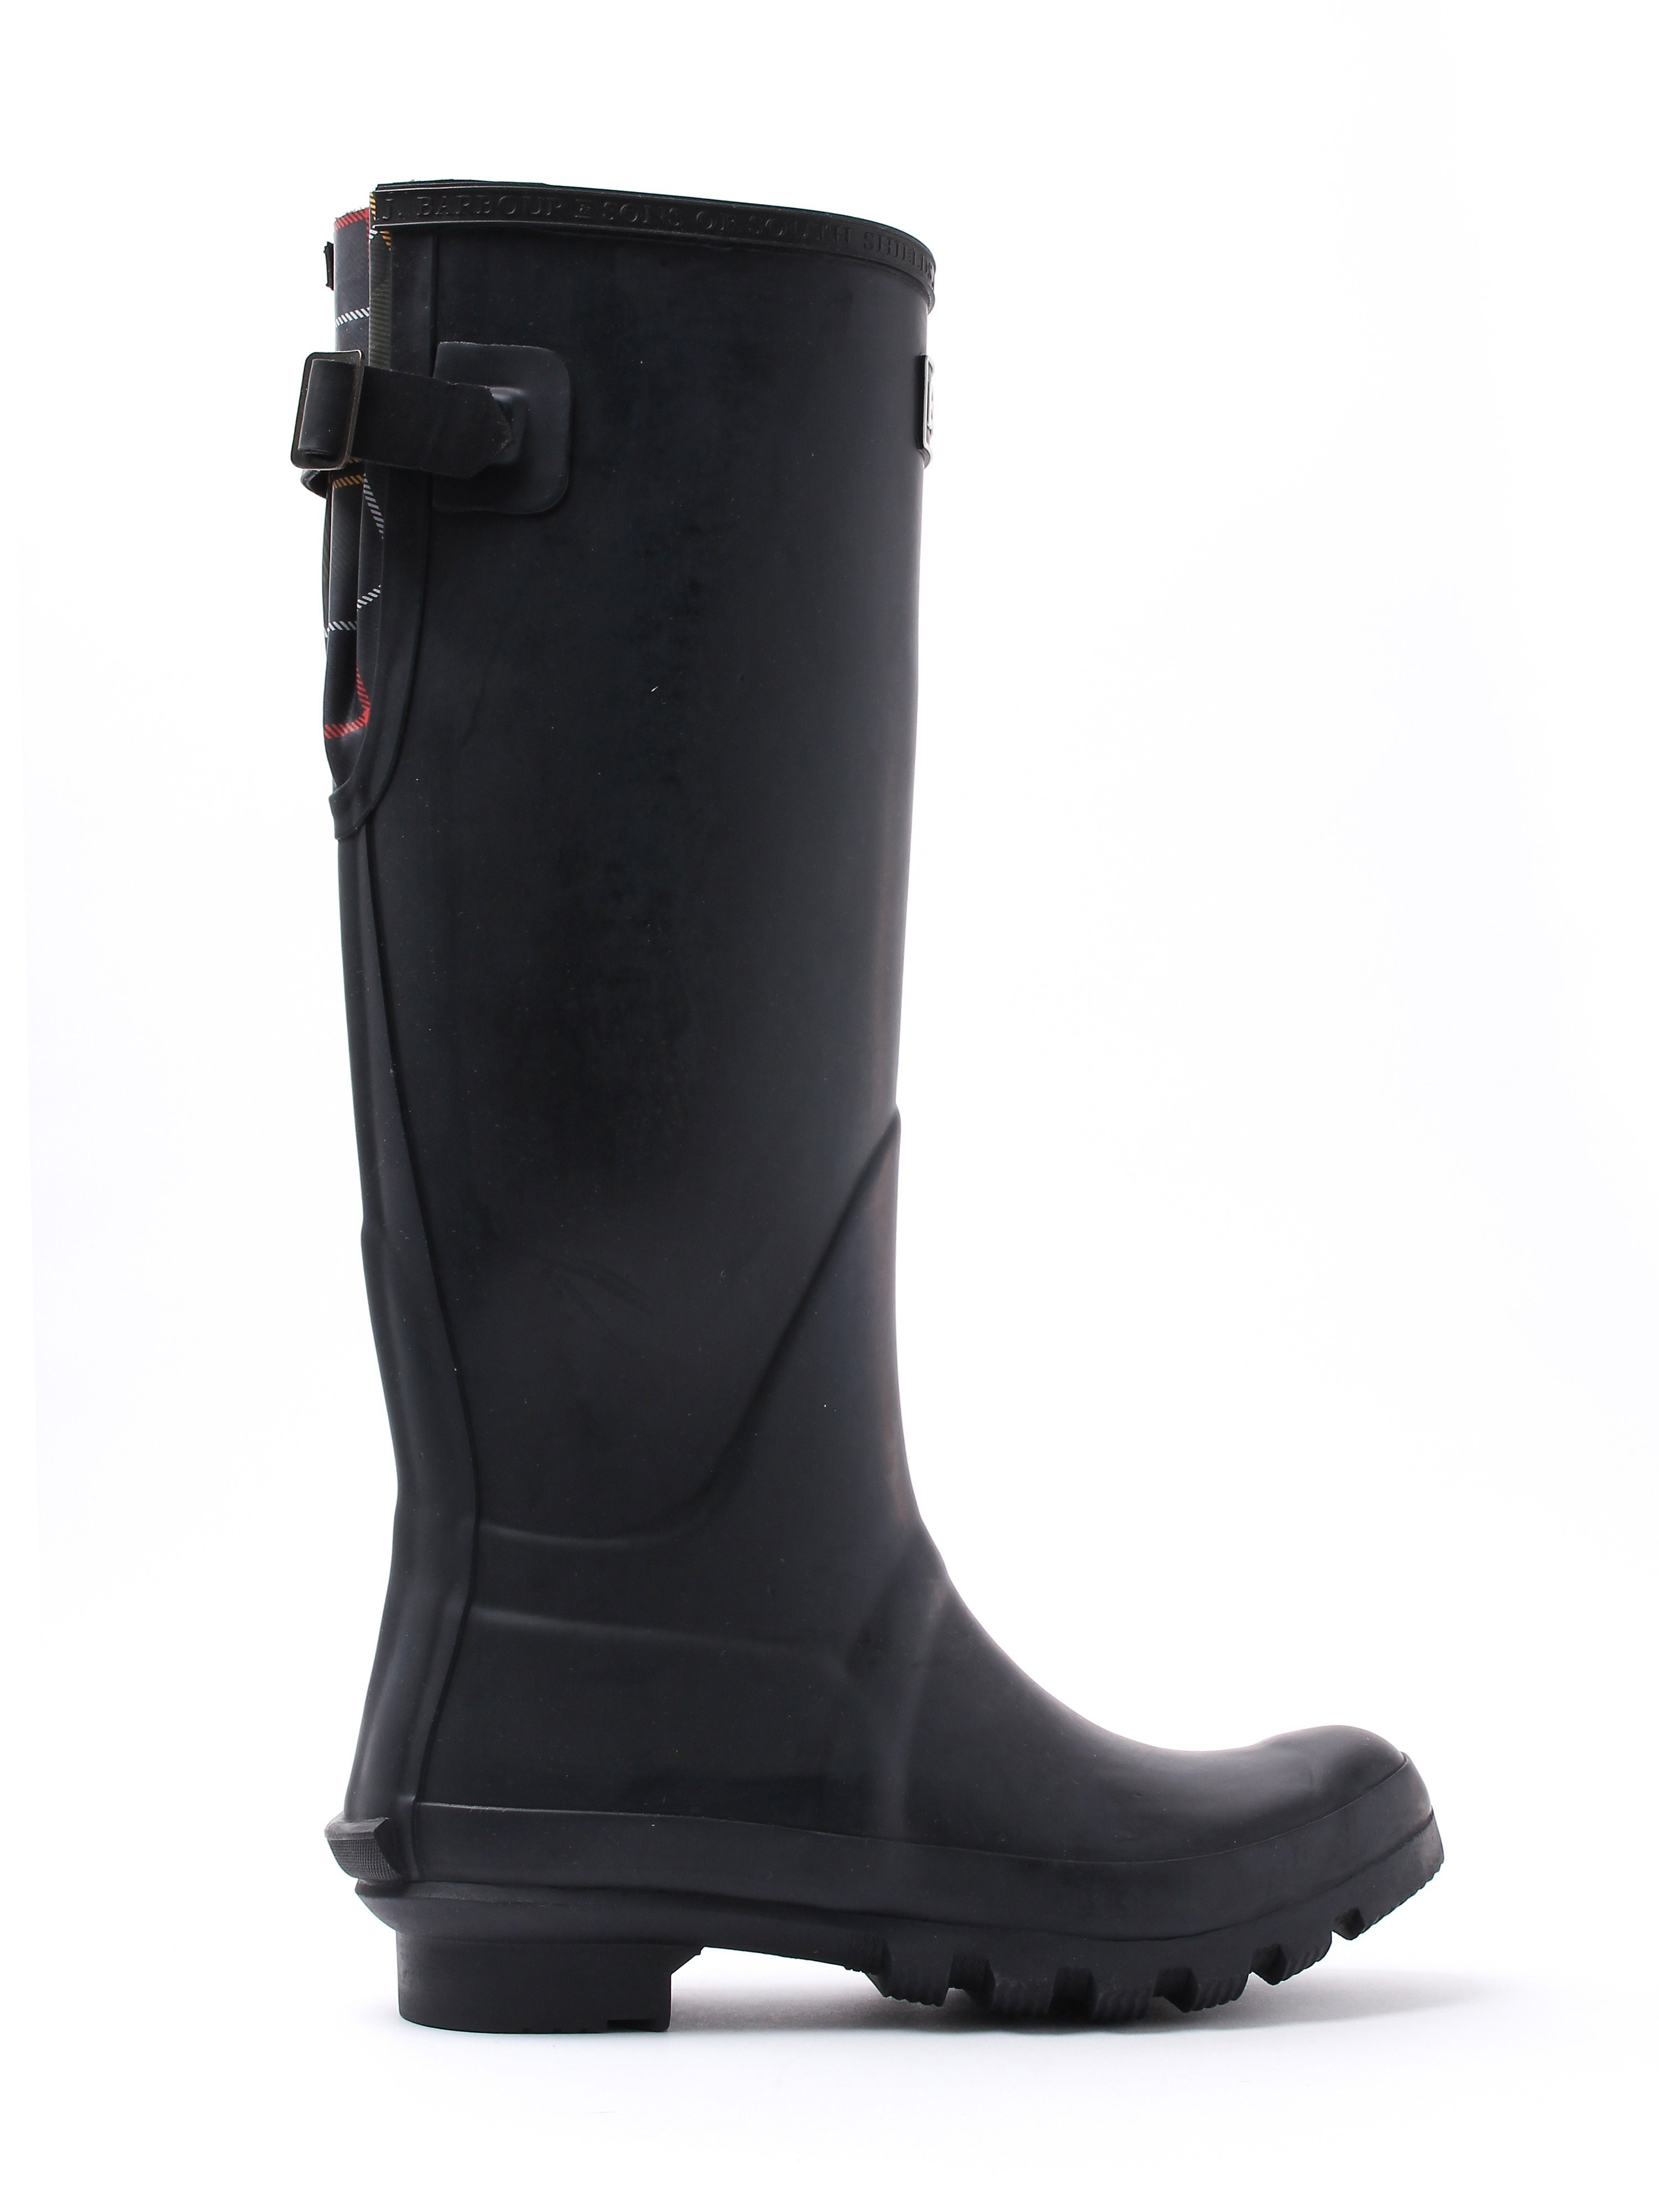 Barbour Women's Jarrow Tall Rubber Wellington Boots - Black